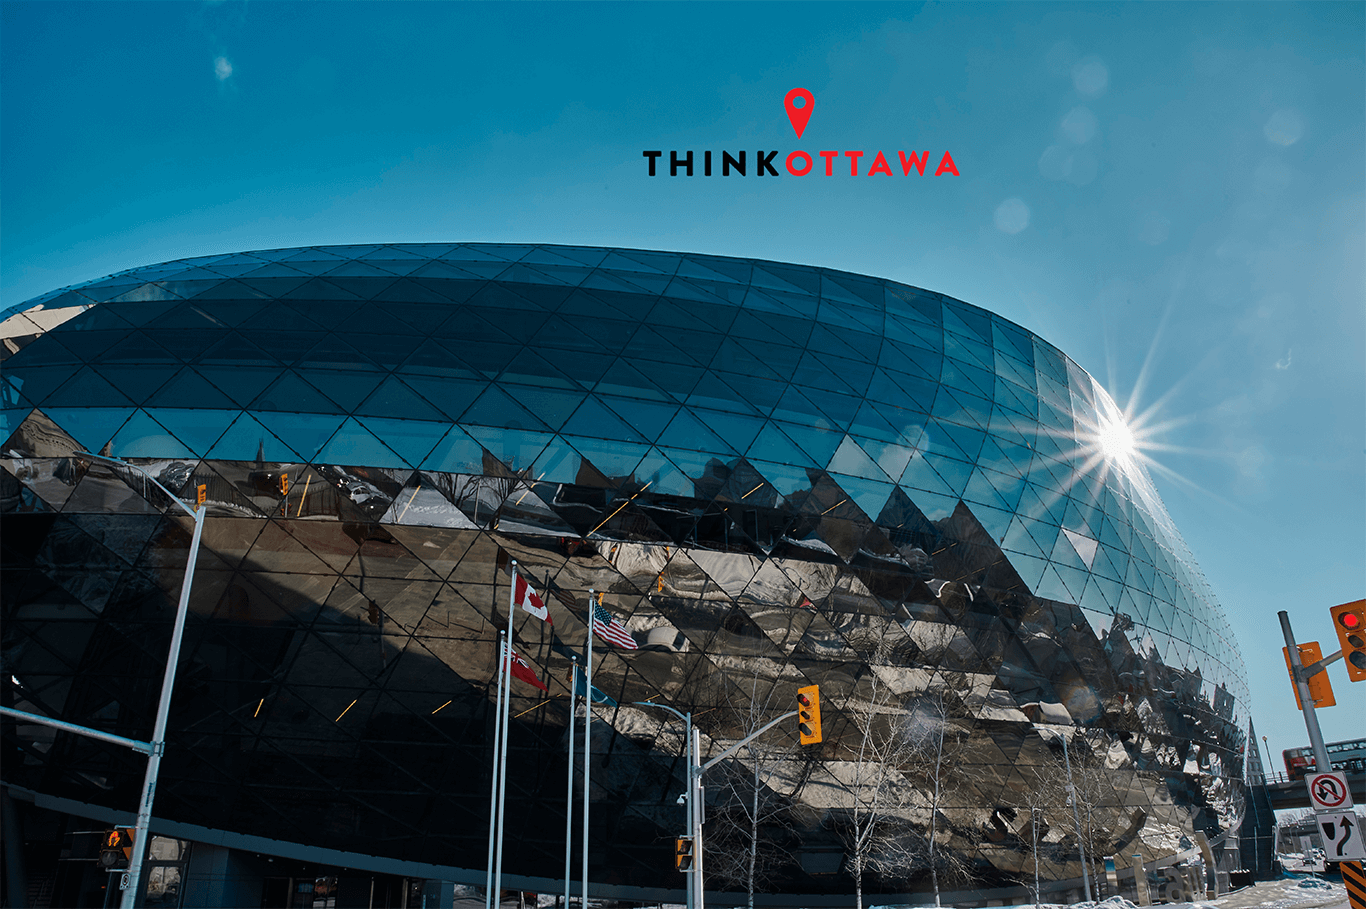 Think Ottawa